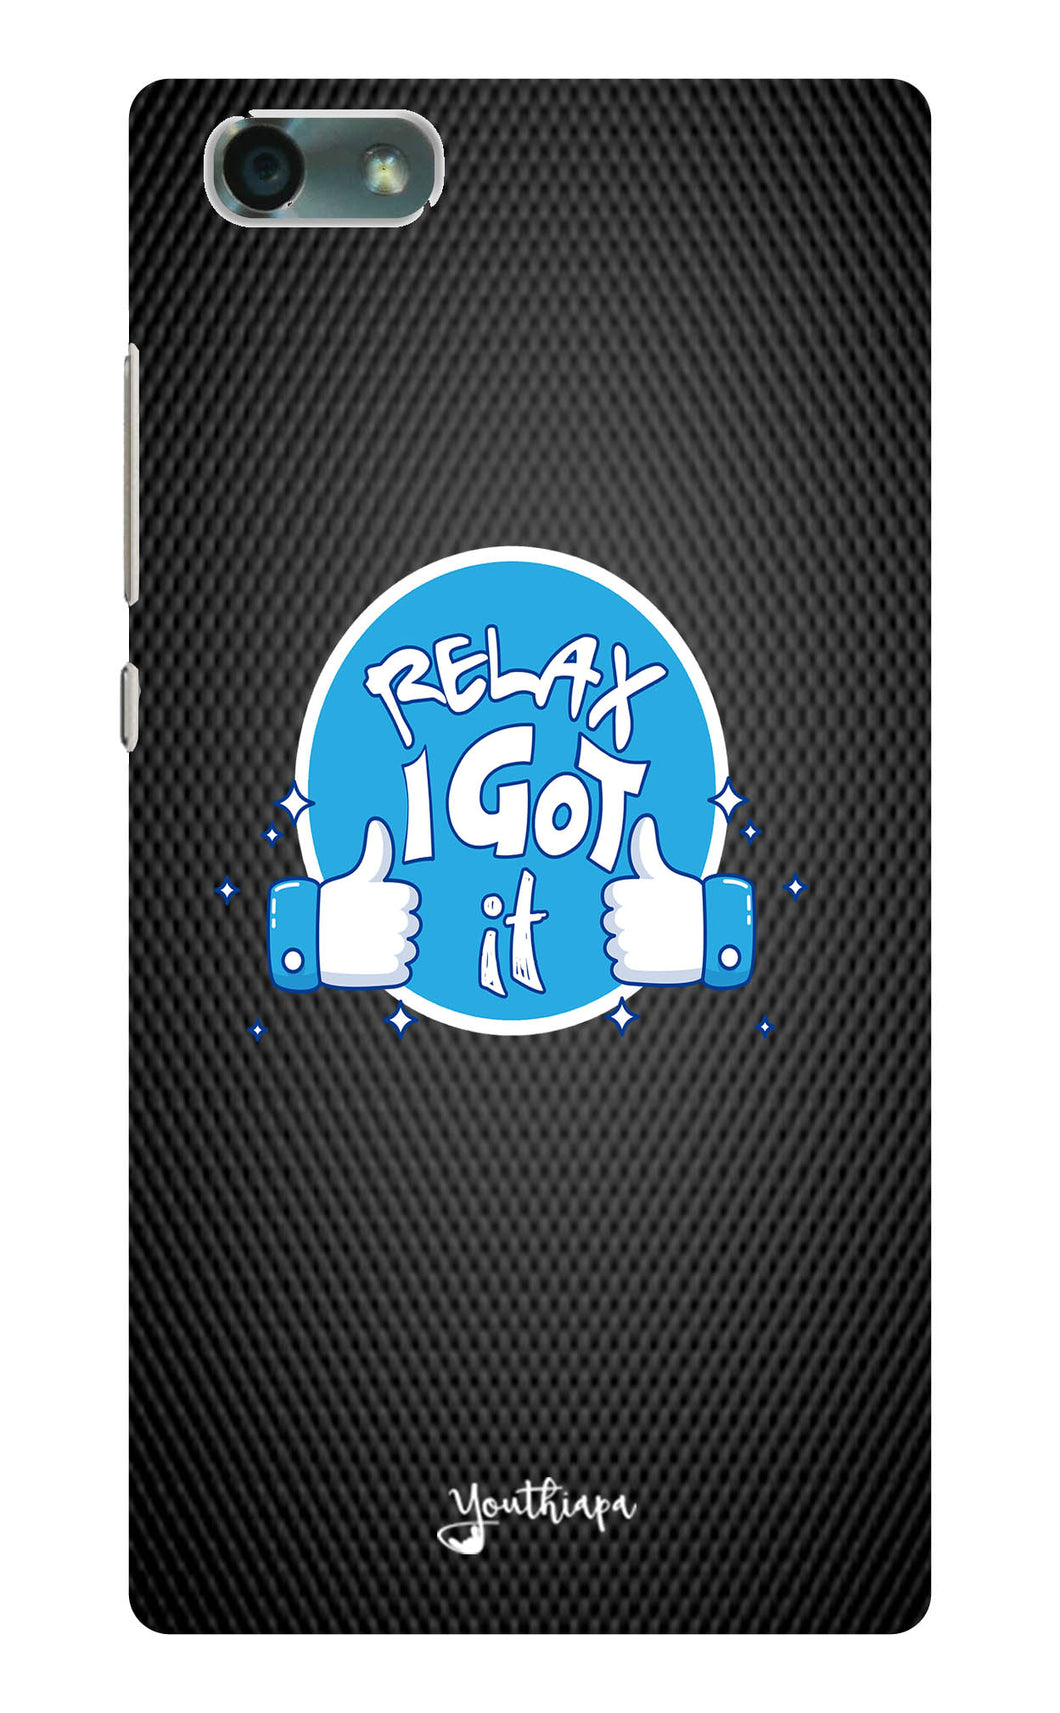 Relax Edition for Huawei Honor 4x